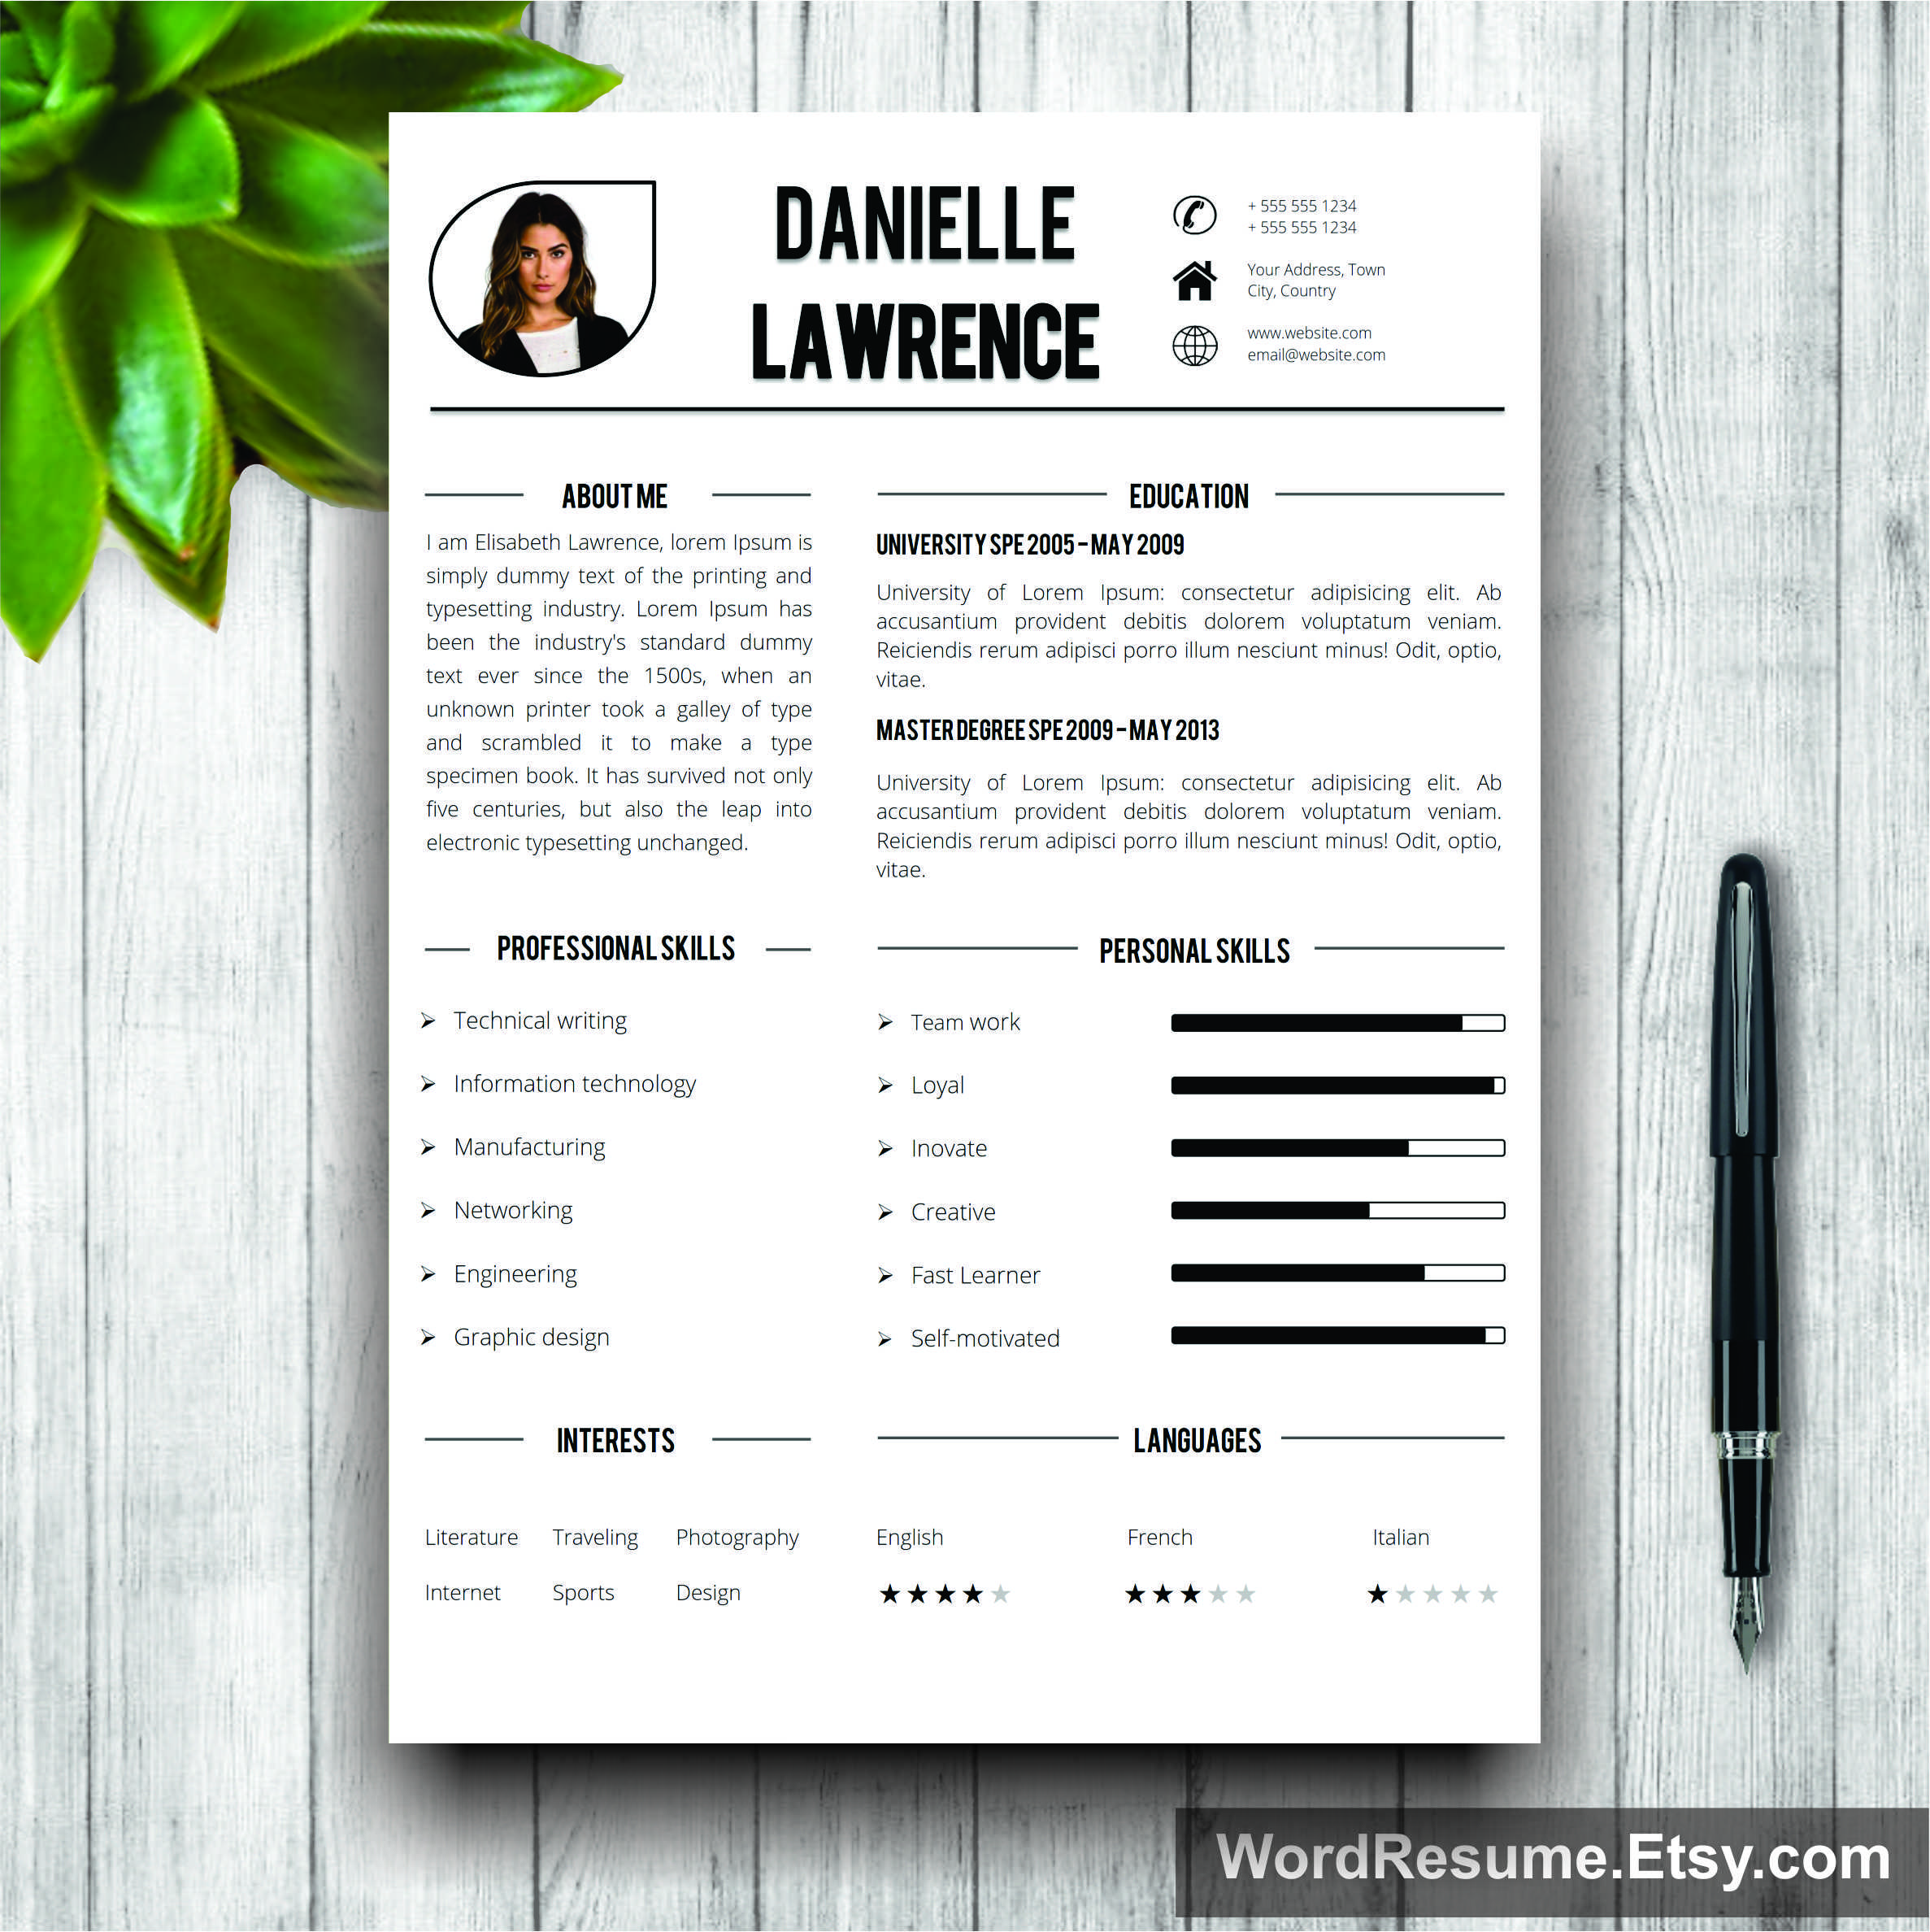 resume template mockup 13 - Resume Cover Letter Word Template